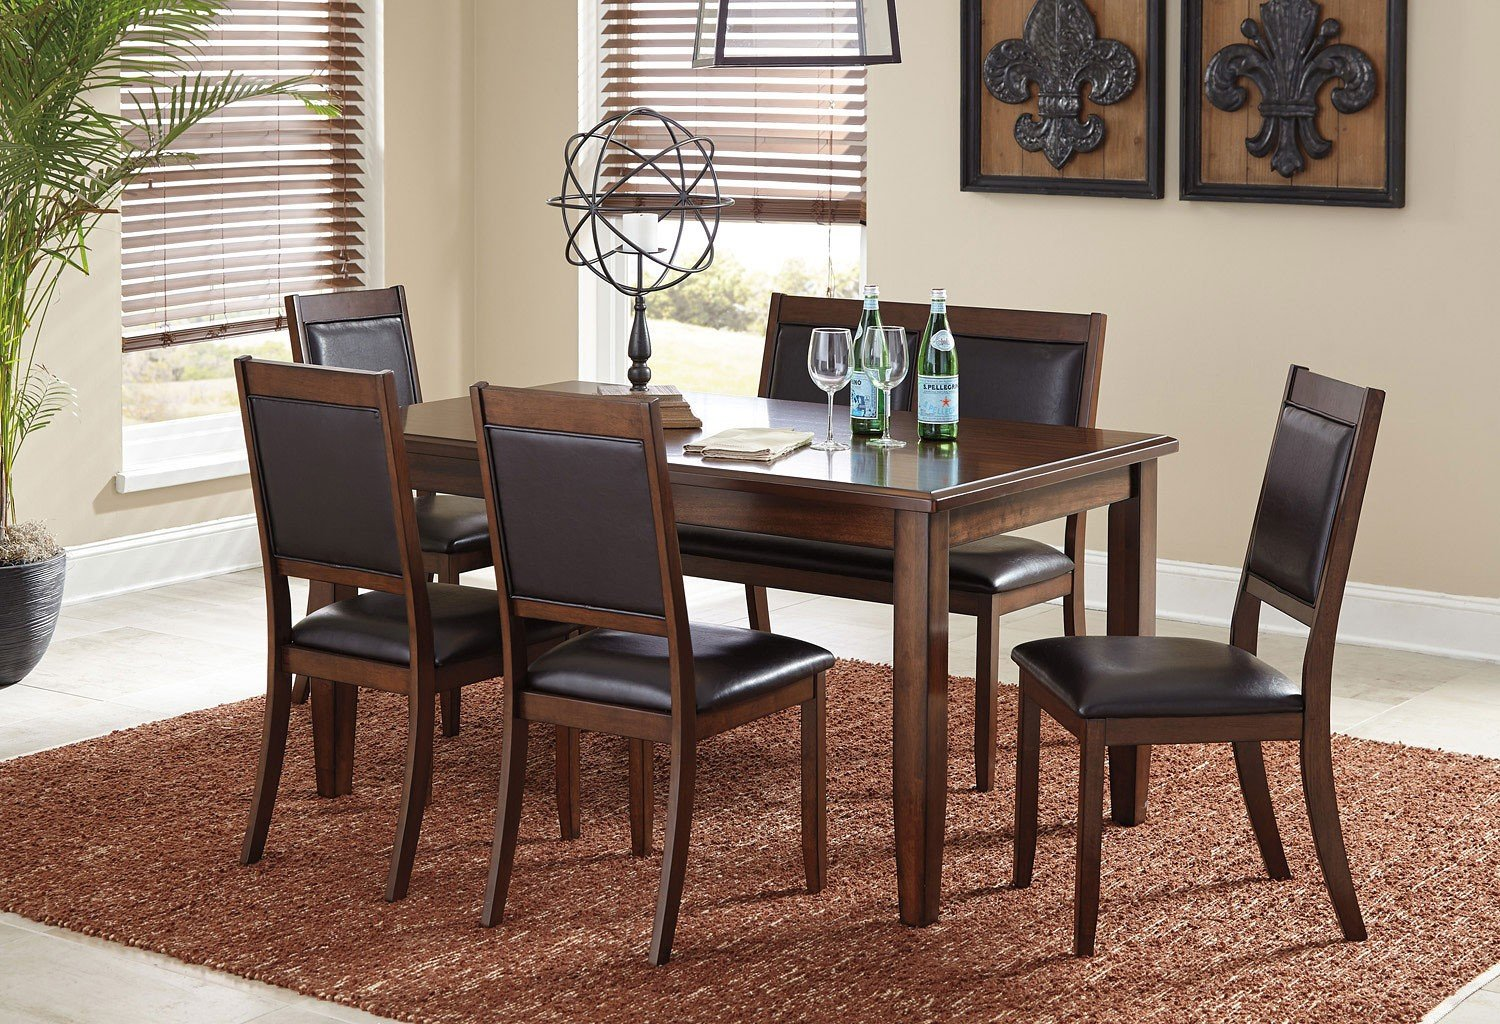 ashley furniture dining set with amazing | Meredy 6-Piece Dining Room Set Signature Design ...